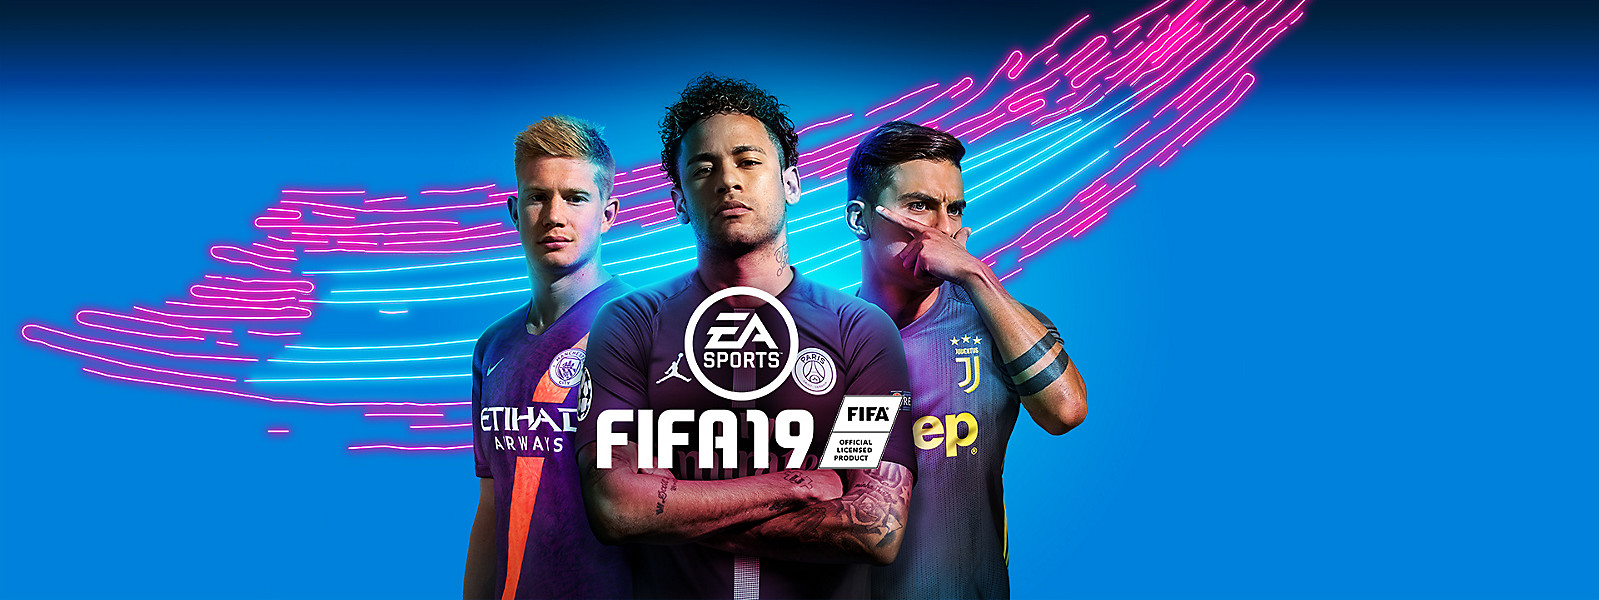 Download And Review FIFA 19 Free For PC Full Version